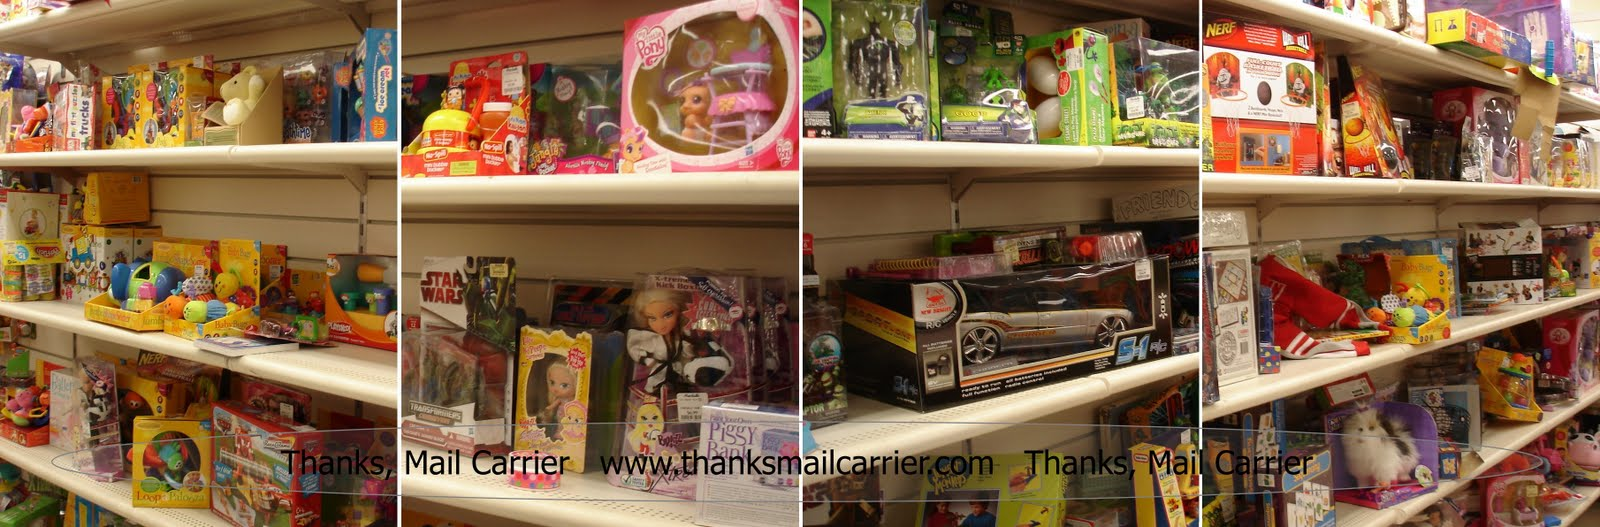 Toys From Tj Maxx : Thanks mail carrier t j maxx marshalls review